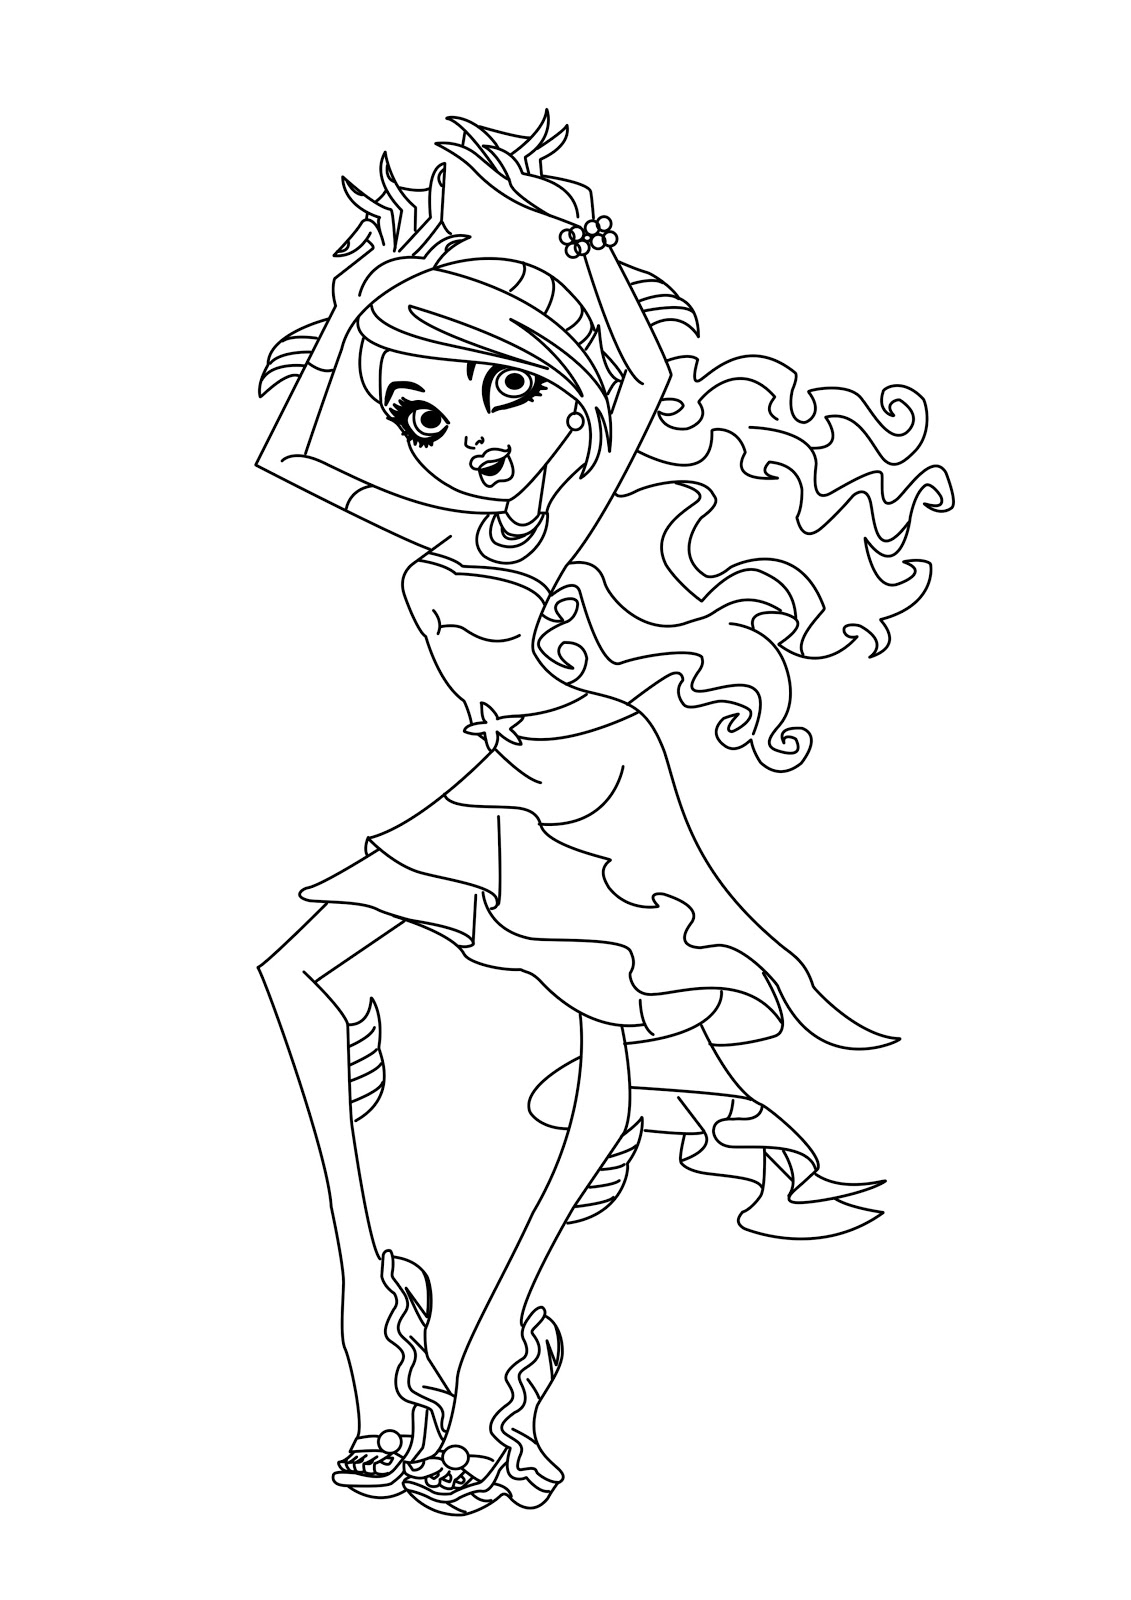 Coloring Pages Monster High Image